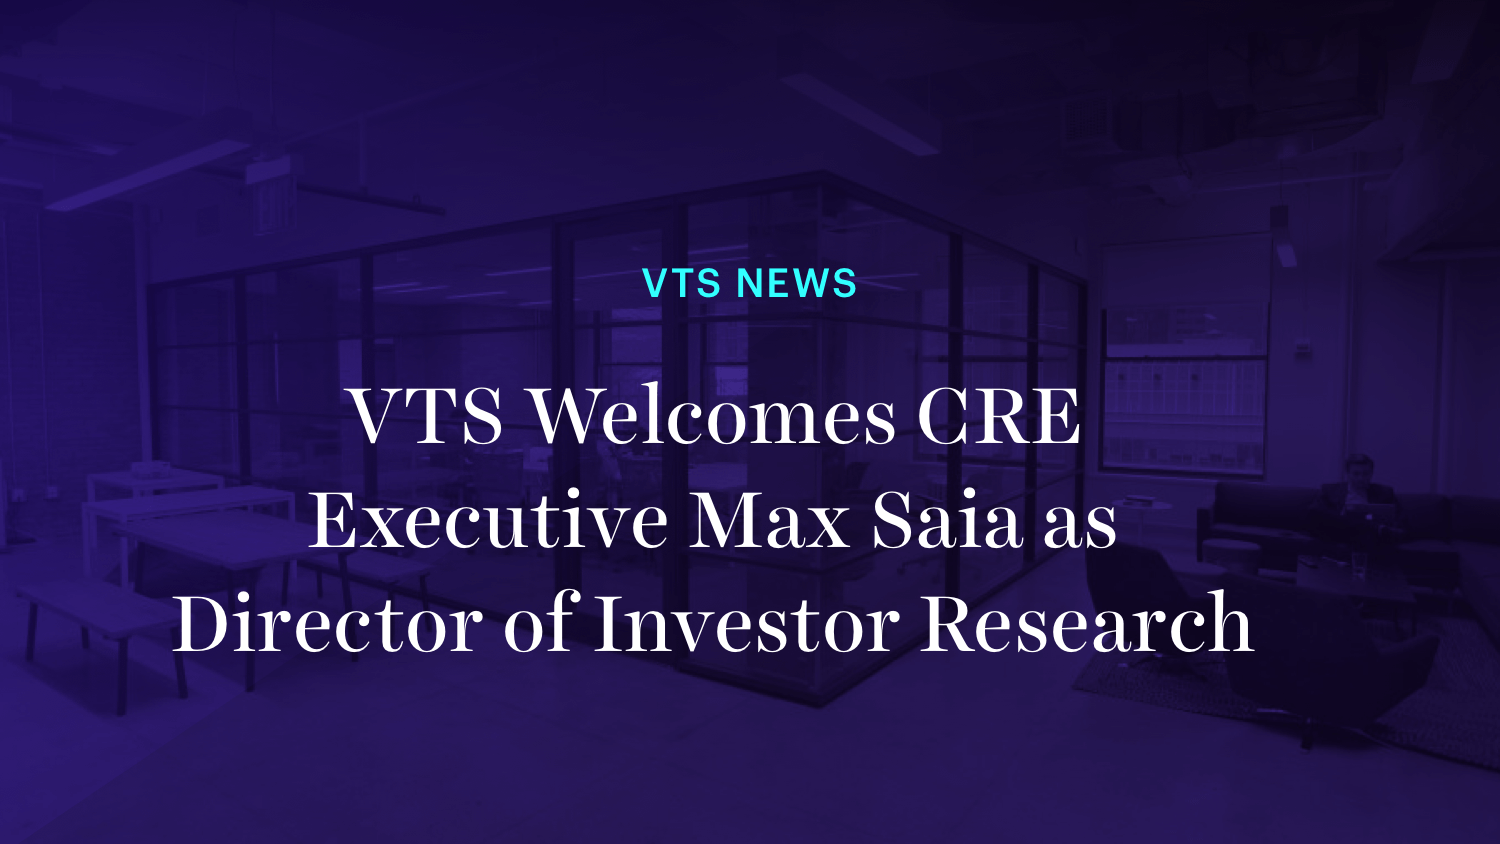 VTS Welcomes CRE Executive Max Saia as Director of Investor Research